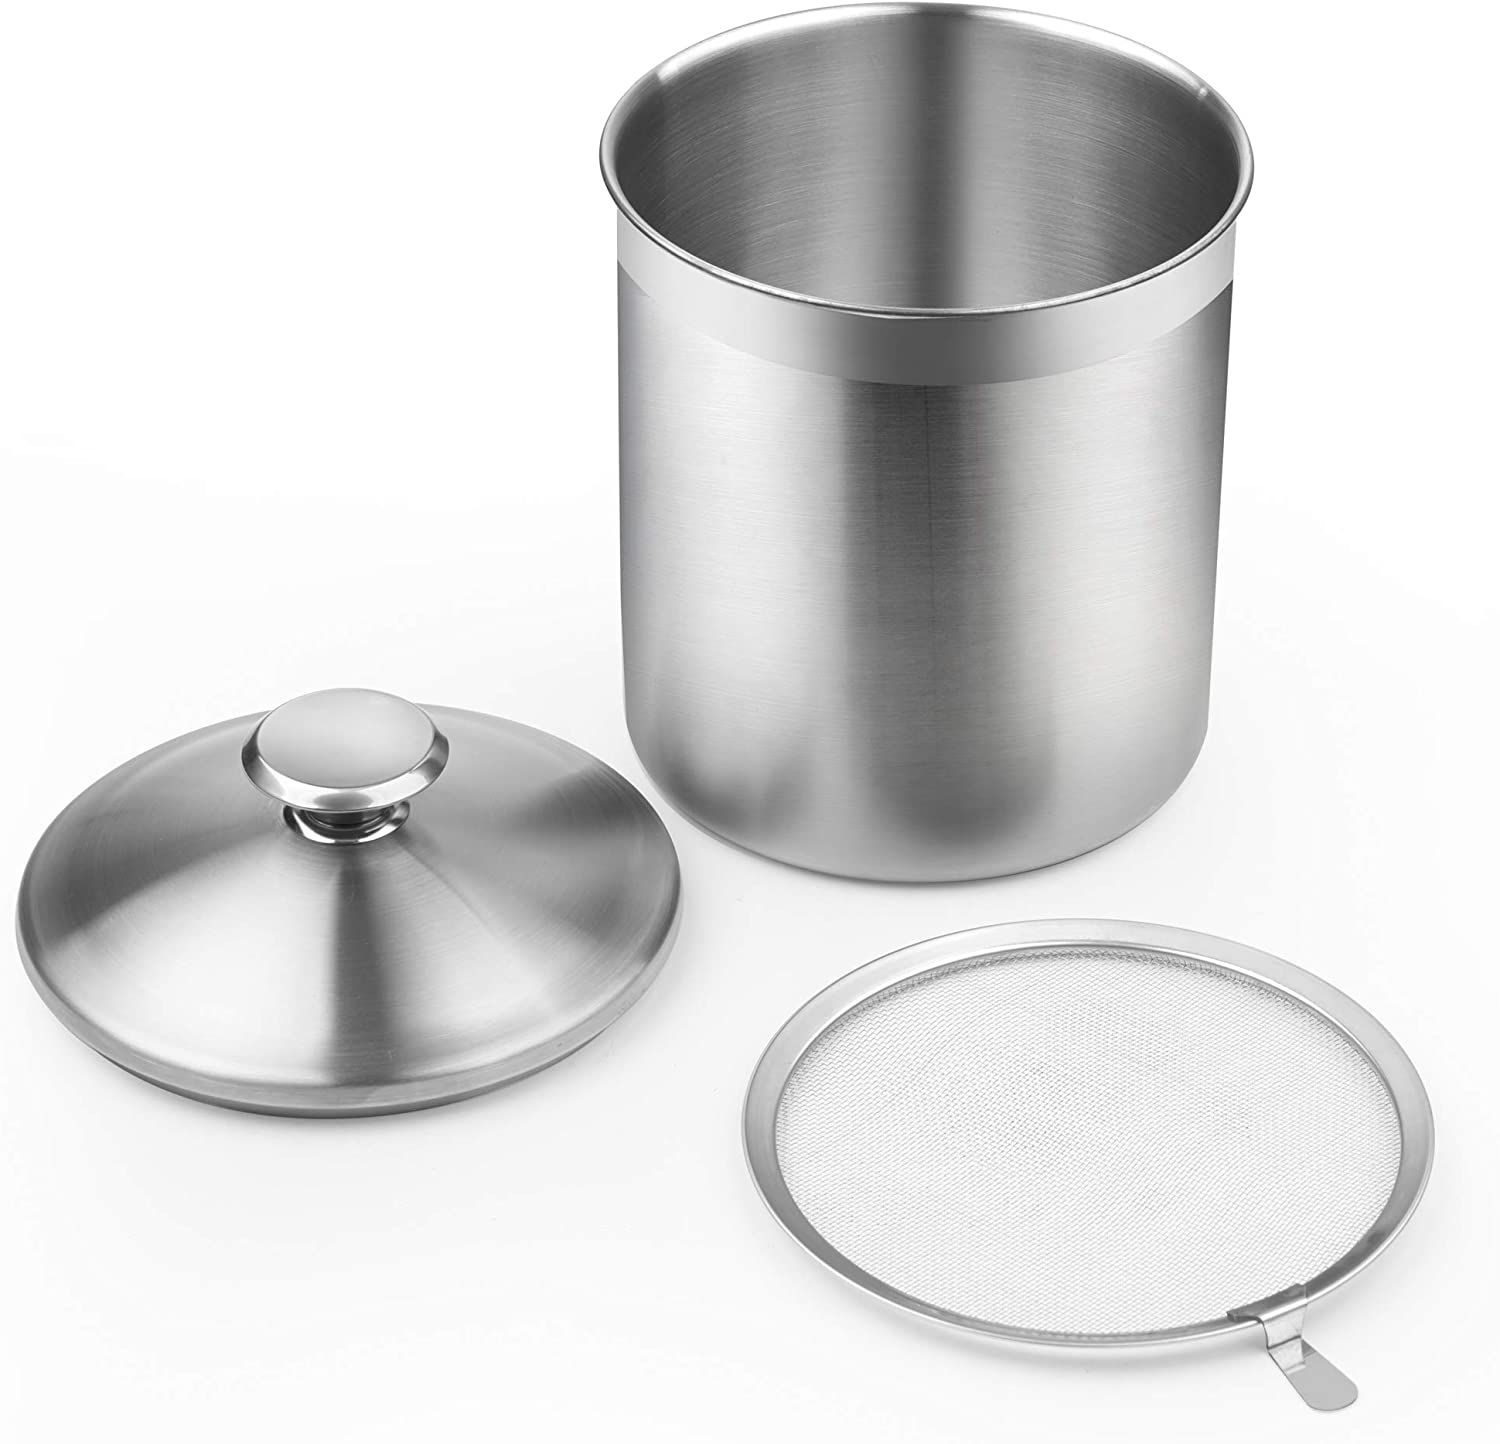 Silver Cook N Home 02651 Stainless Steel Oil Grease Storage Can with strainer 3.5 quarts